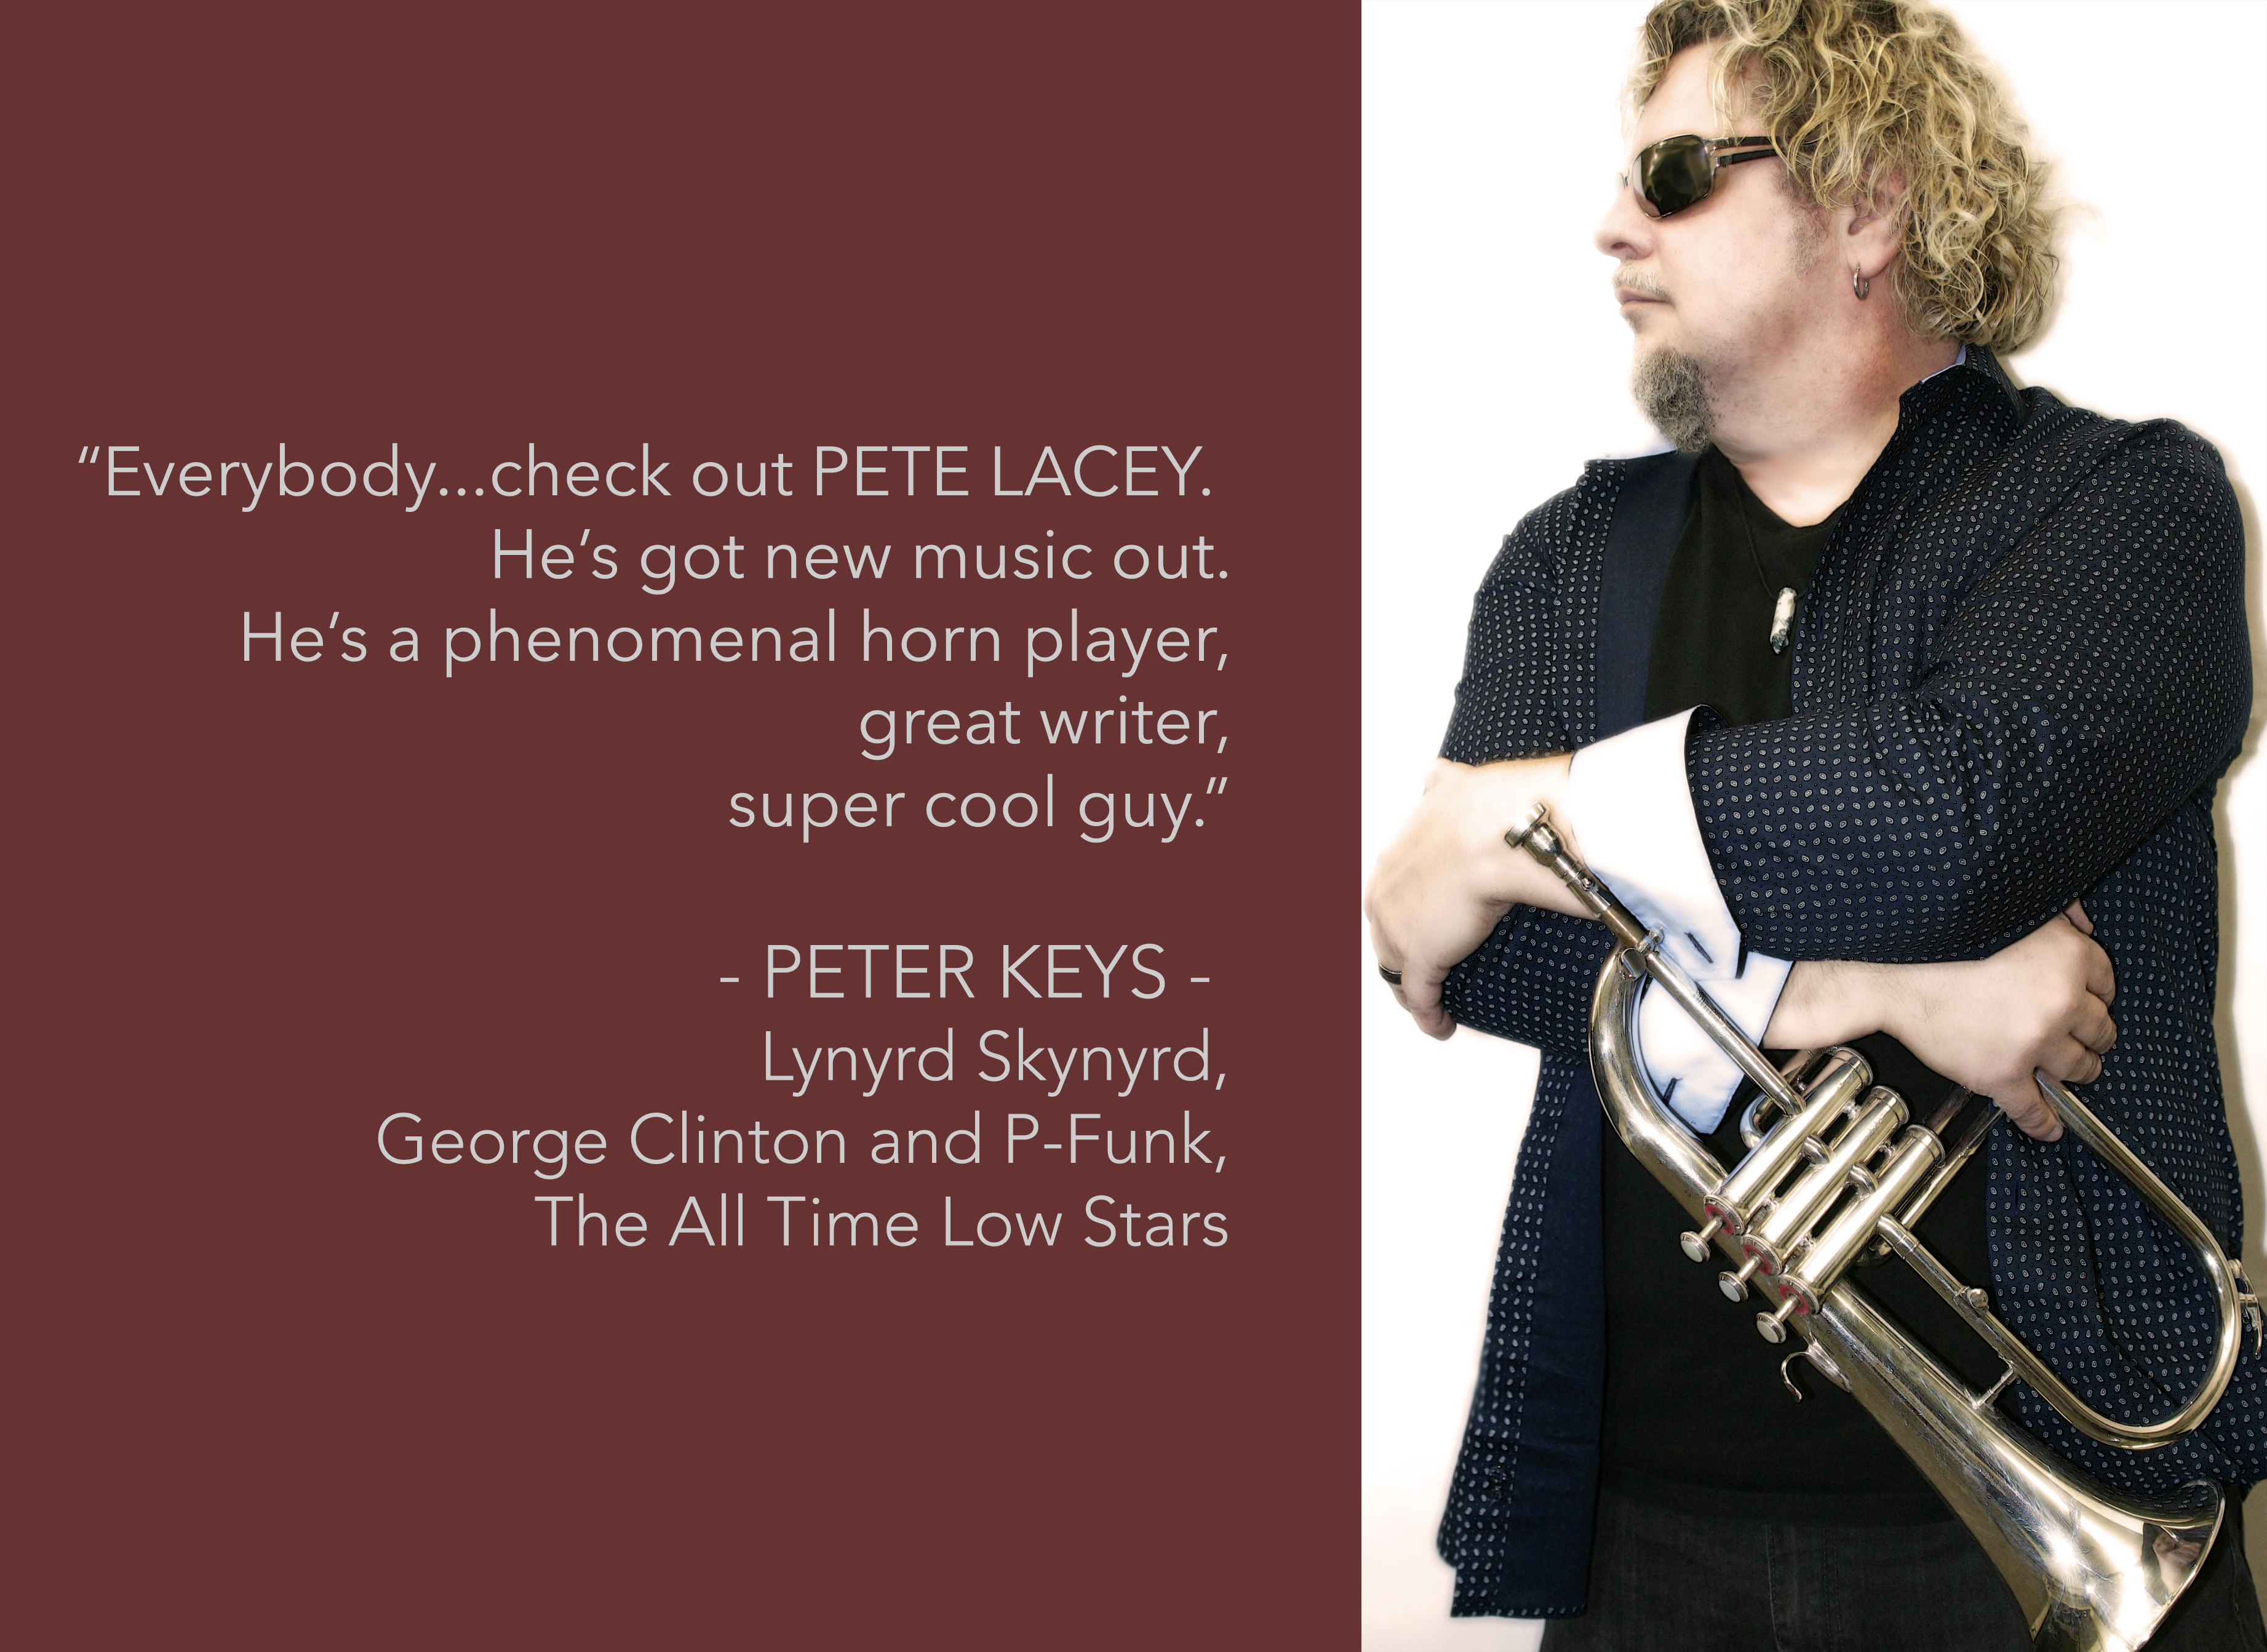 Pete looking side - Peter Keys quote.jpg